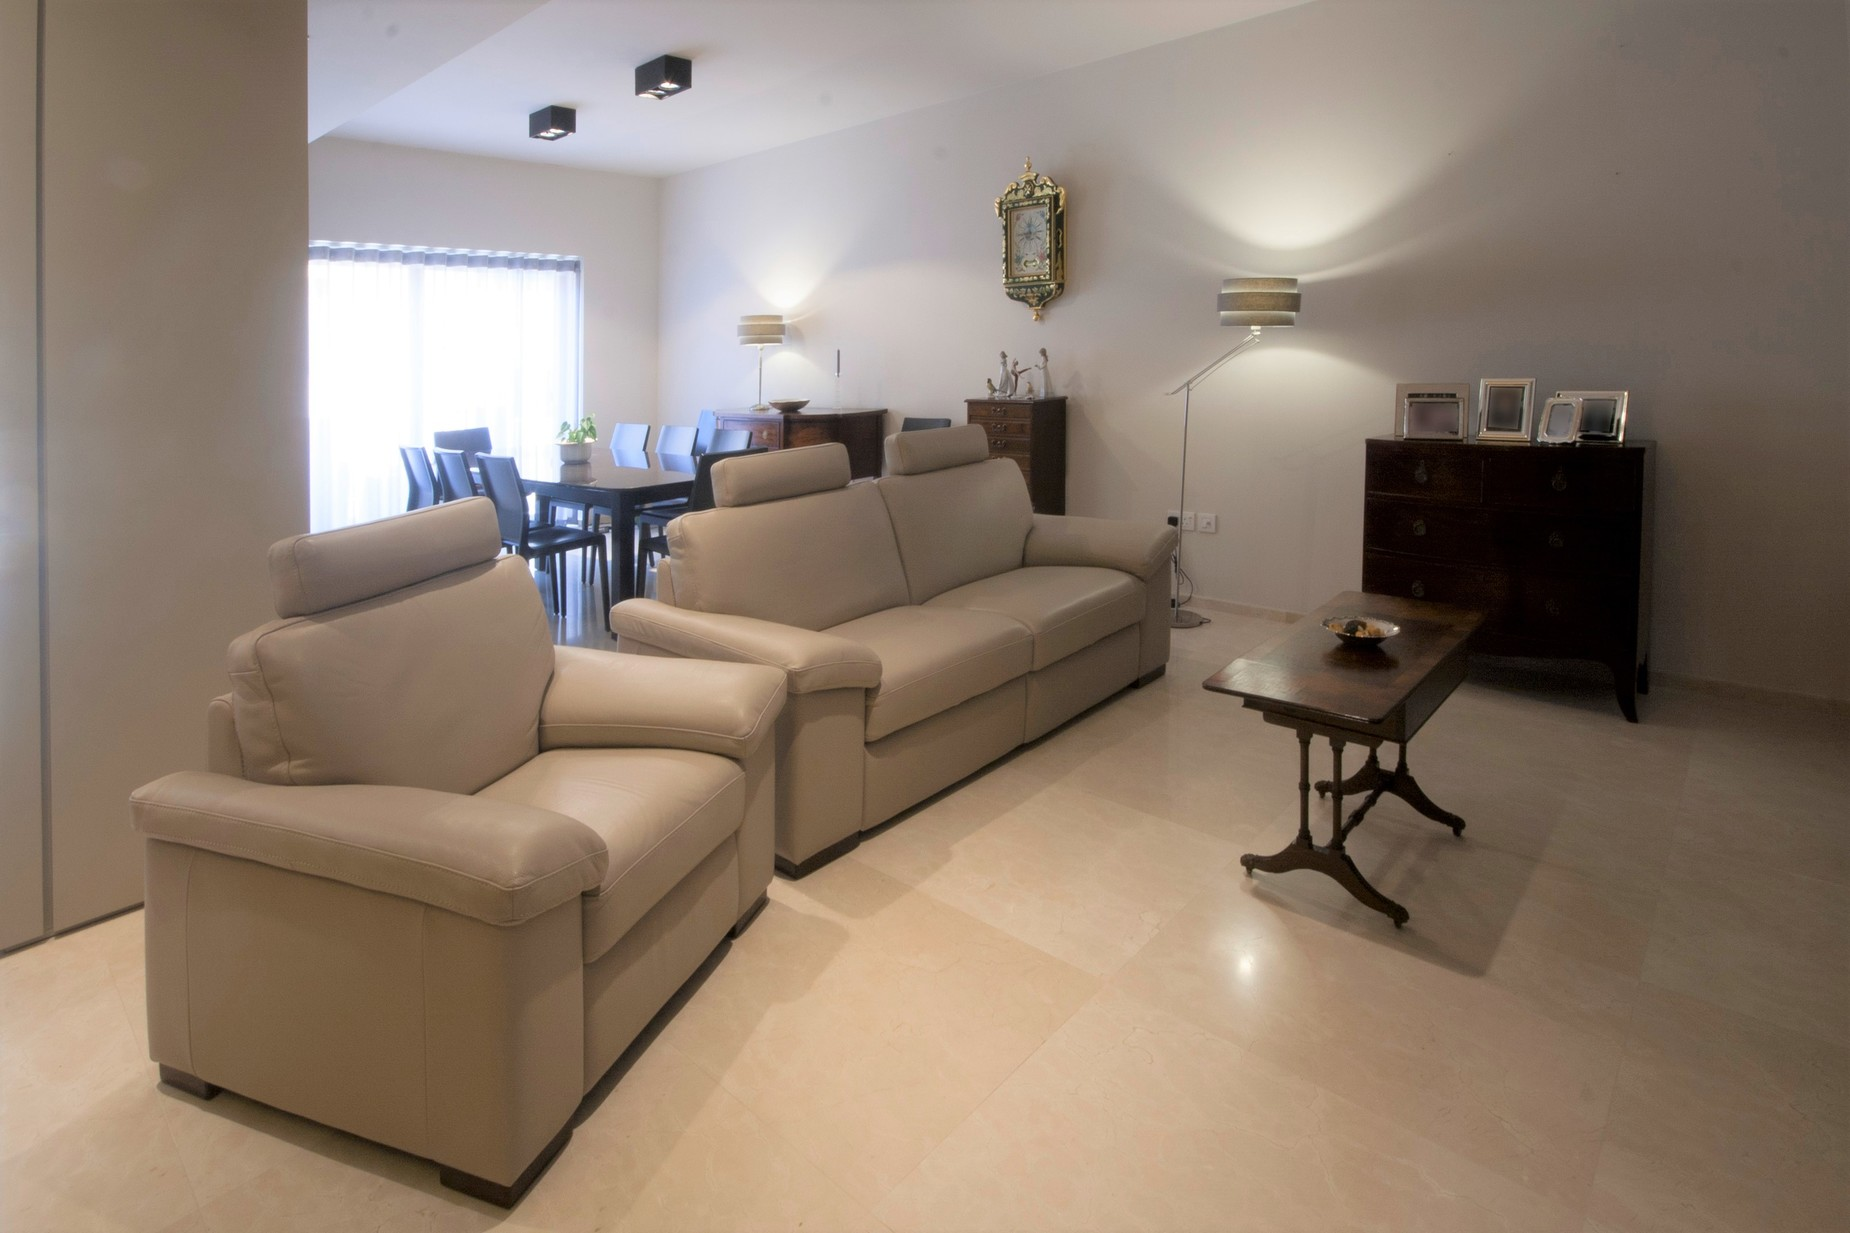 3 bed Apartment For Sale in Sliema, Sliema - thumb 14